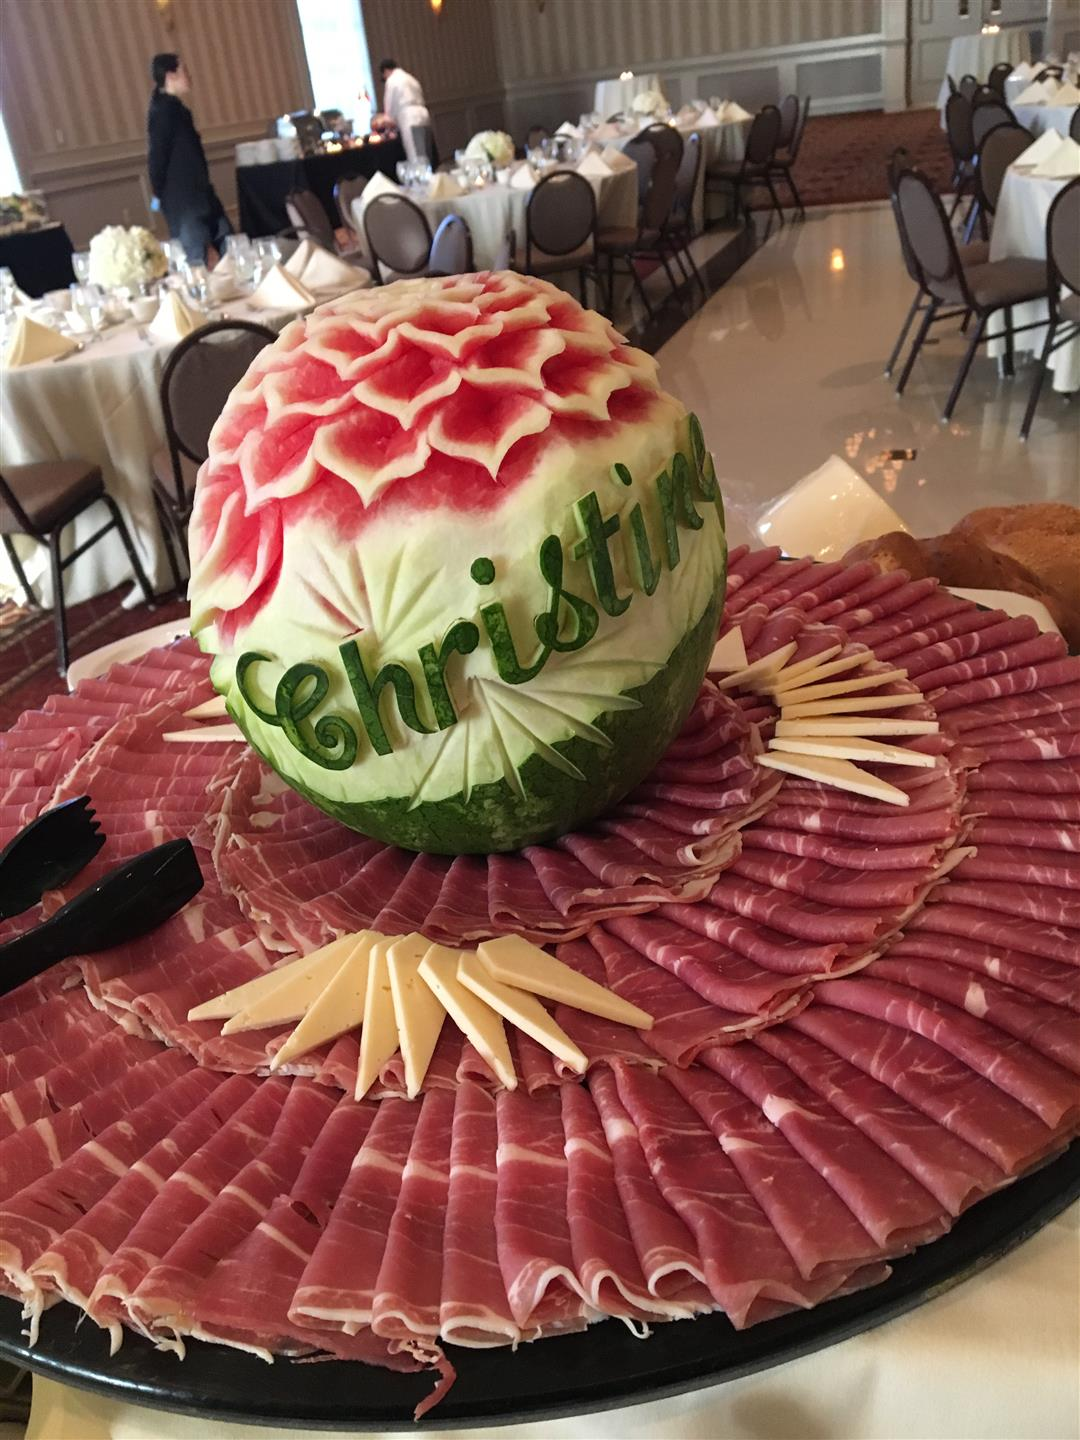 Carved watermelon on to of a meat and cheese platter